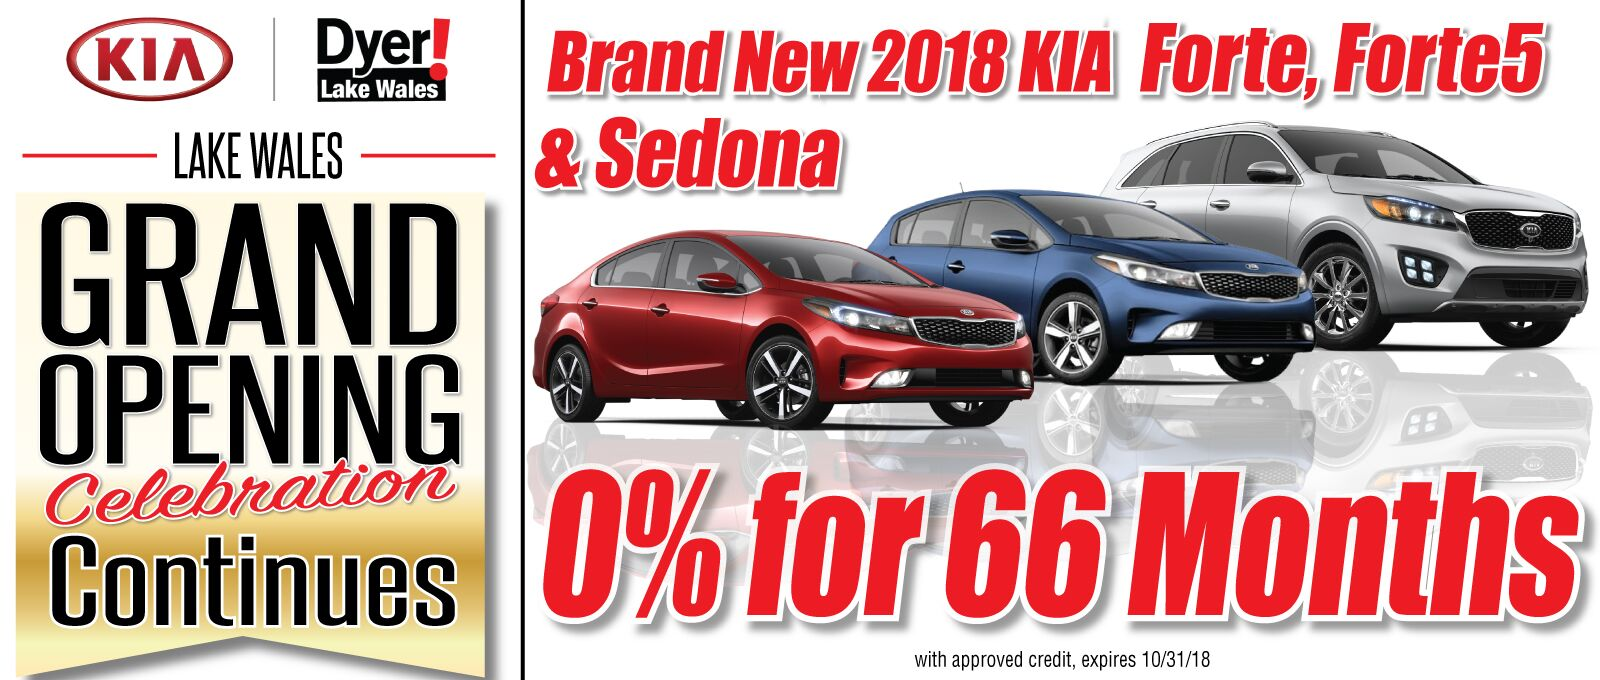 0% APR on Forte and Sedona